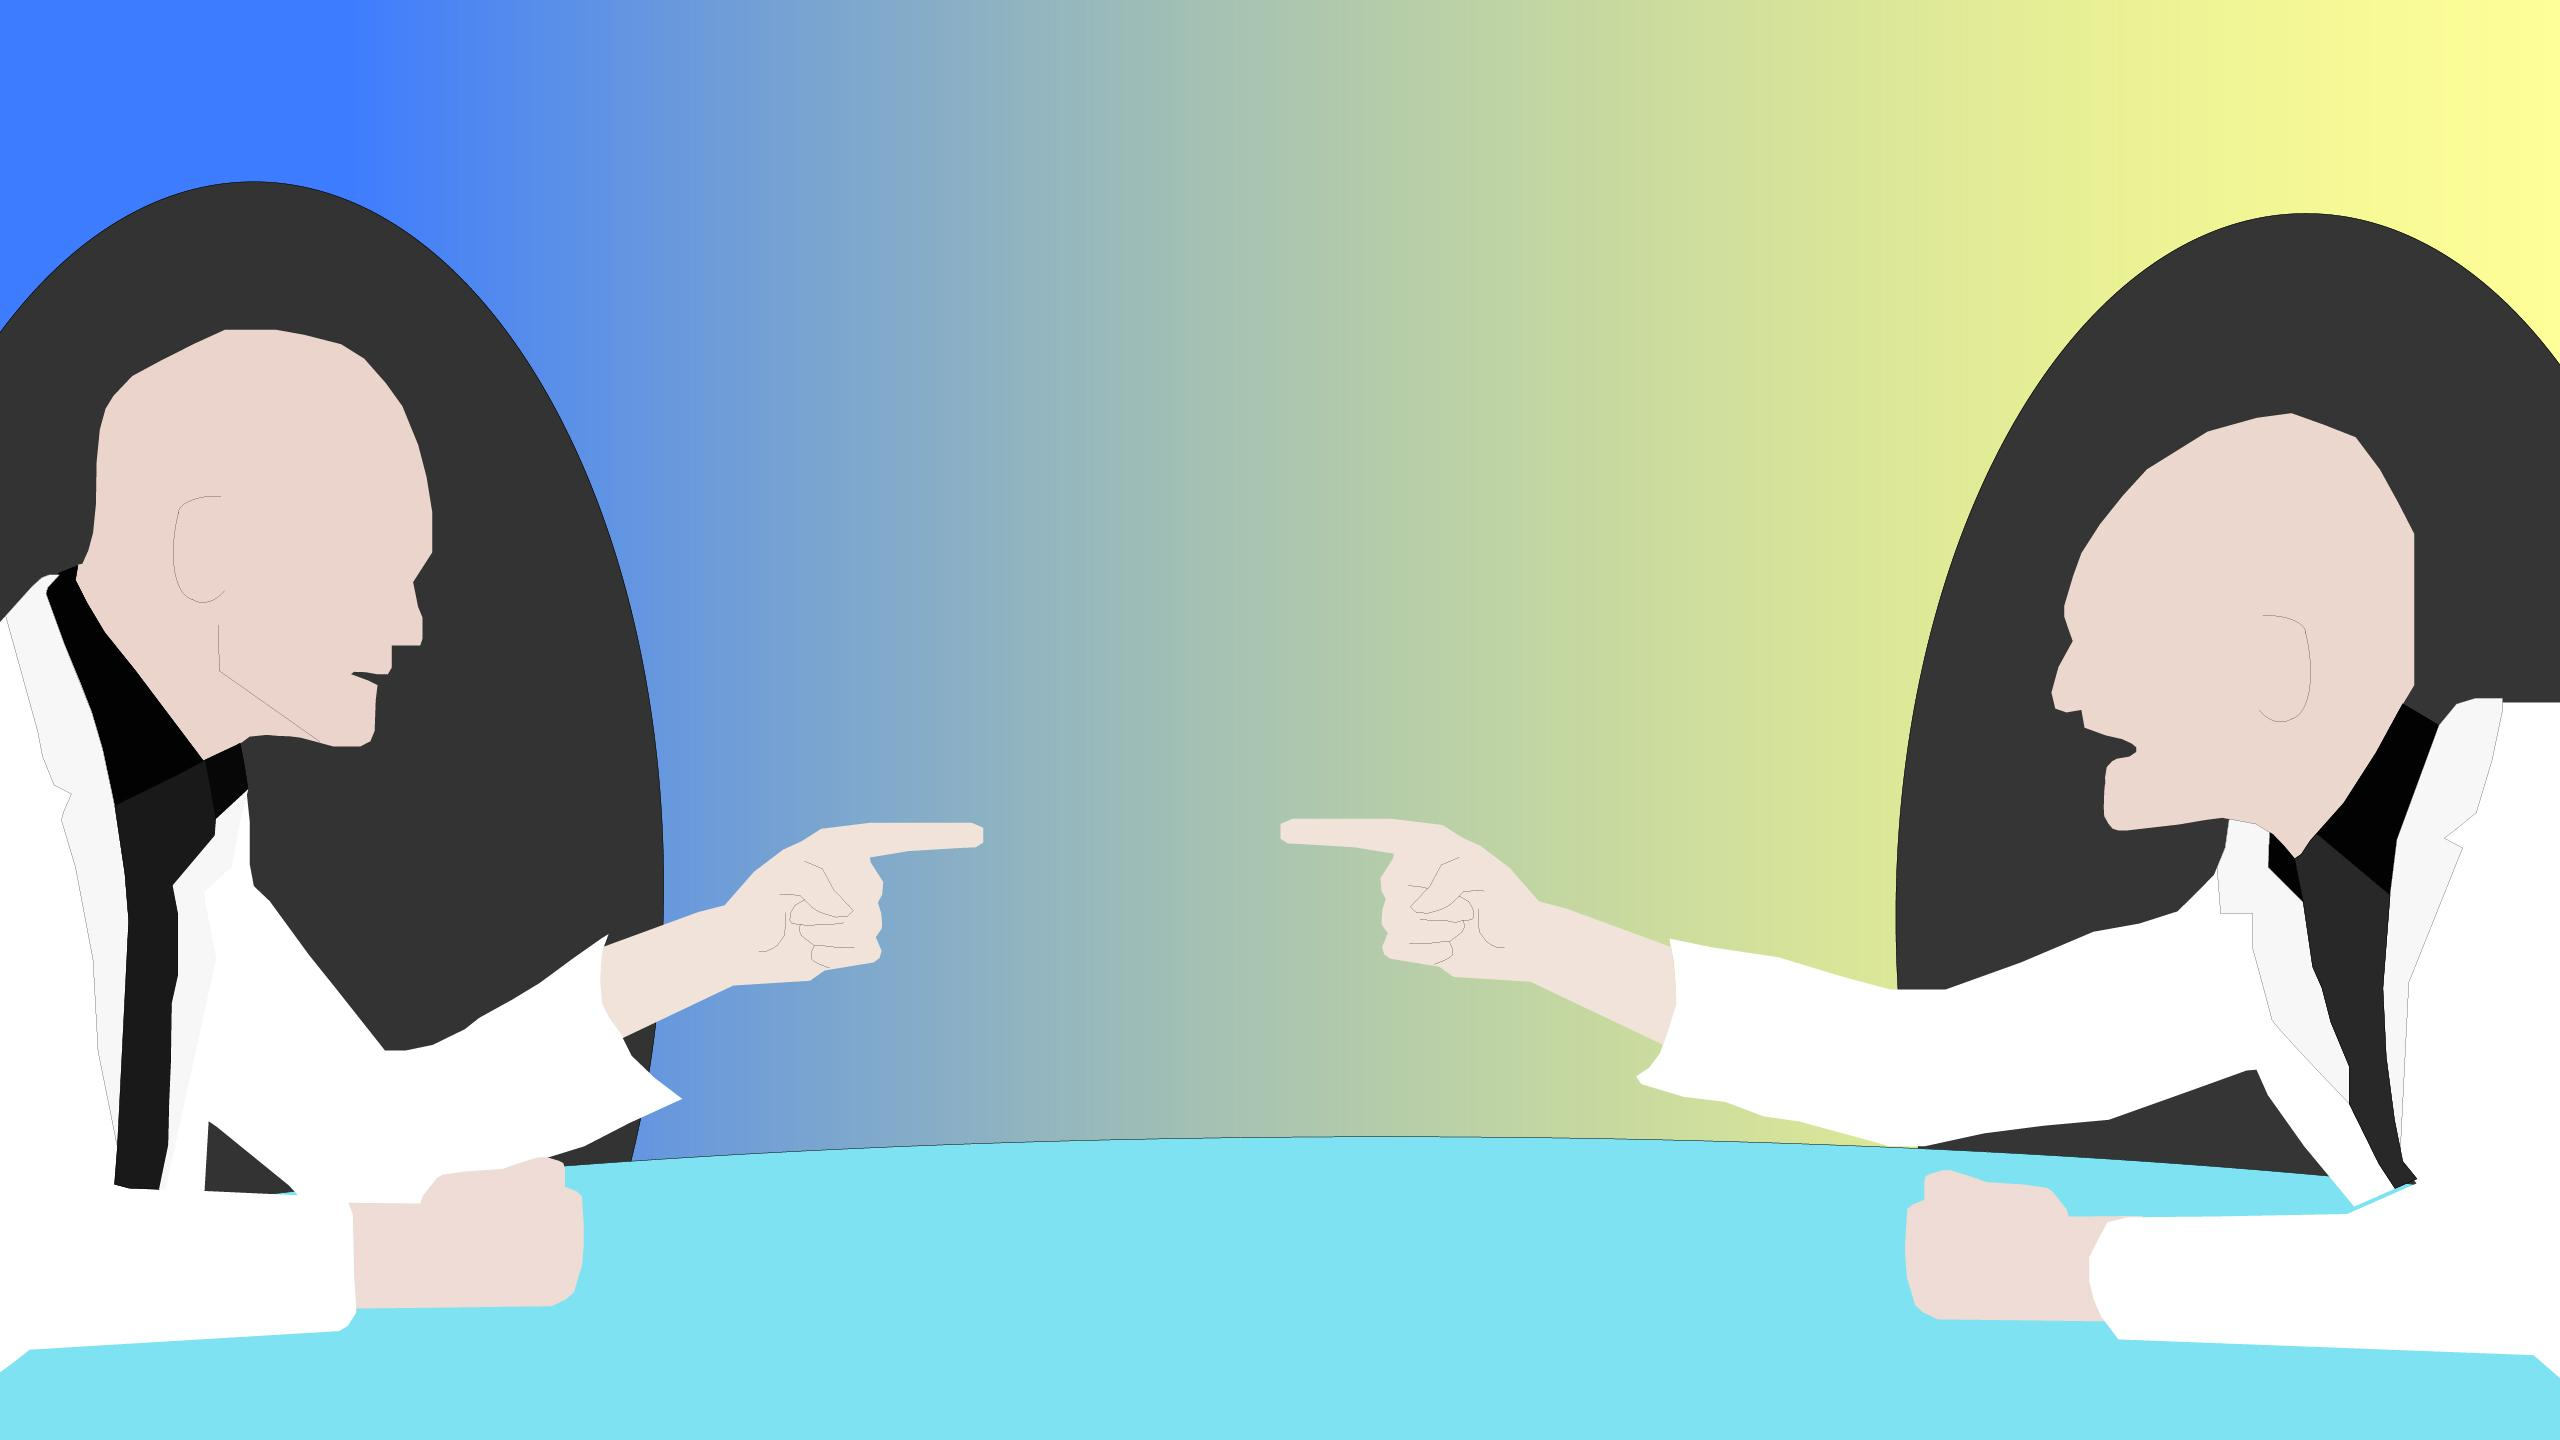 Illustration of two older white men pointing fingers at each other angrily at a conference table.